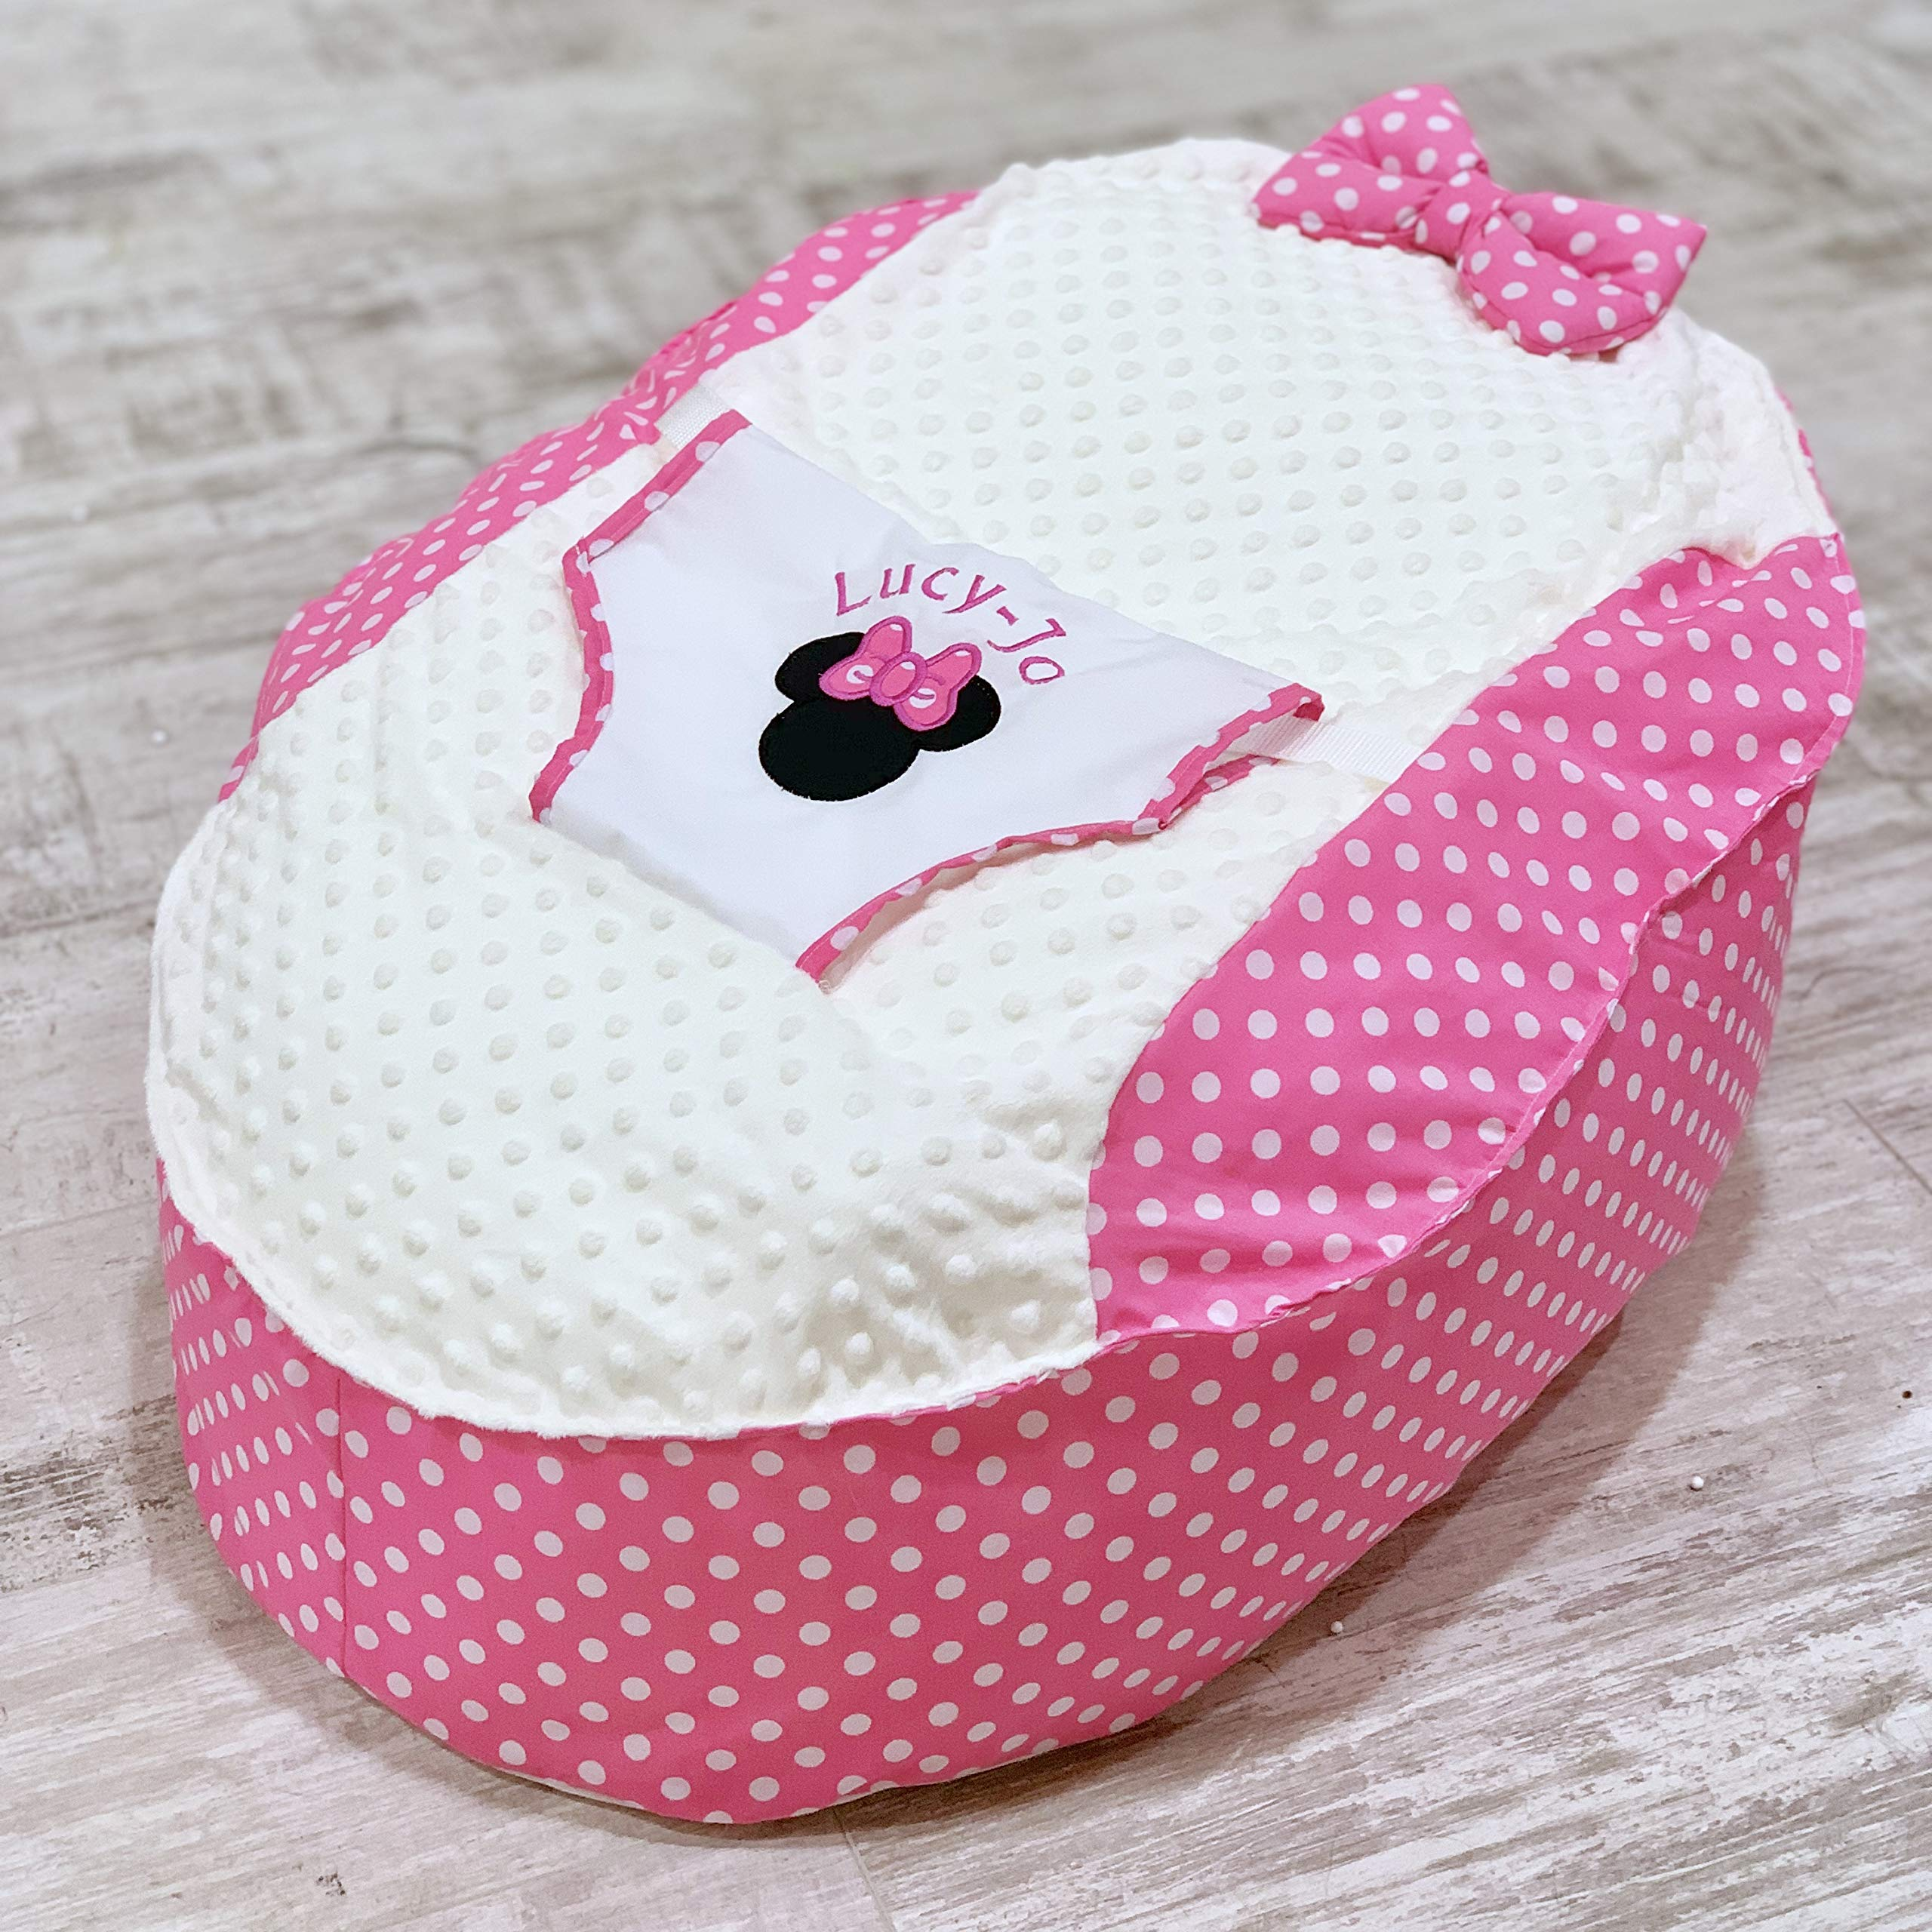 PERSONALISED PRE FILLED BABY BEAN BAG CHAIR SEAT NEWBORN GIRLS BOYS NEWBORN ME TO YOU TATTY TEDDY NEXT DAY DISPATCH